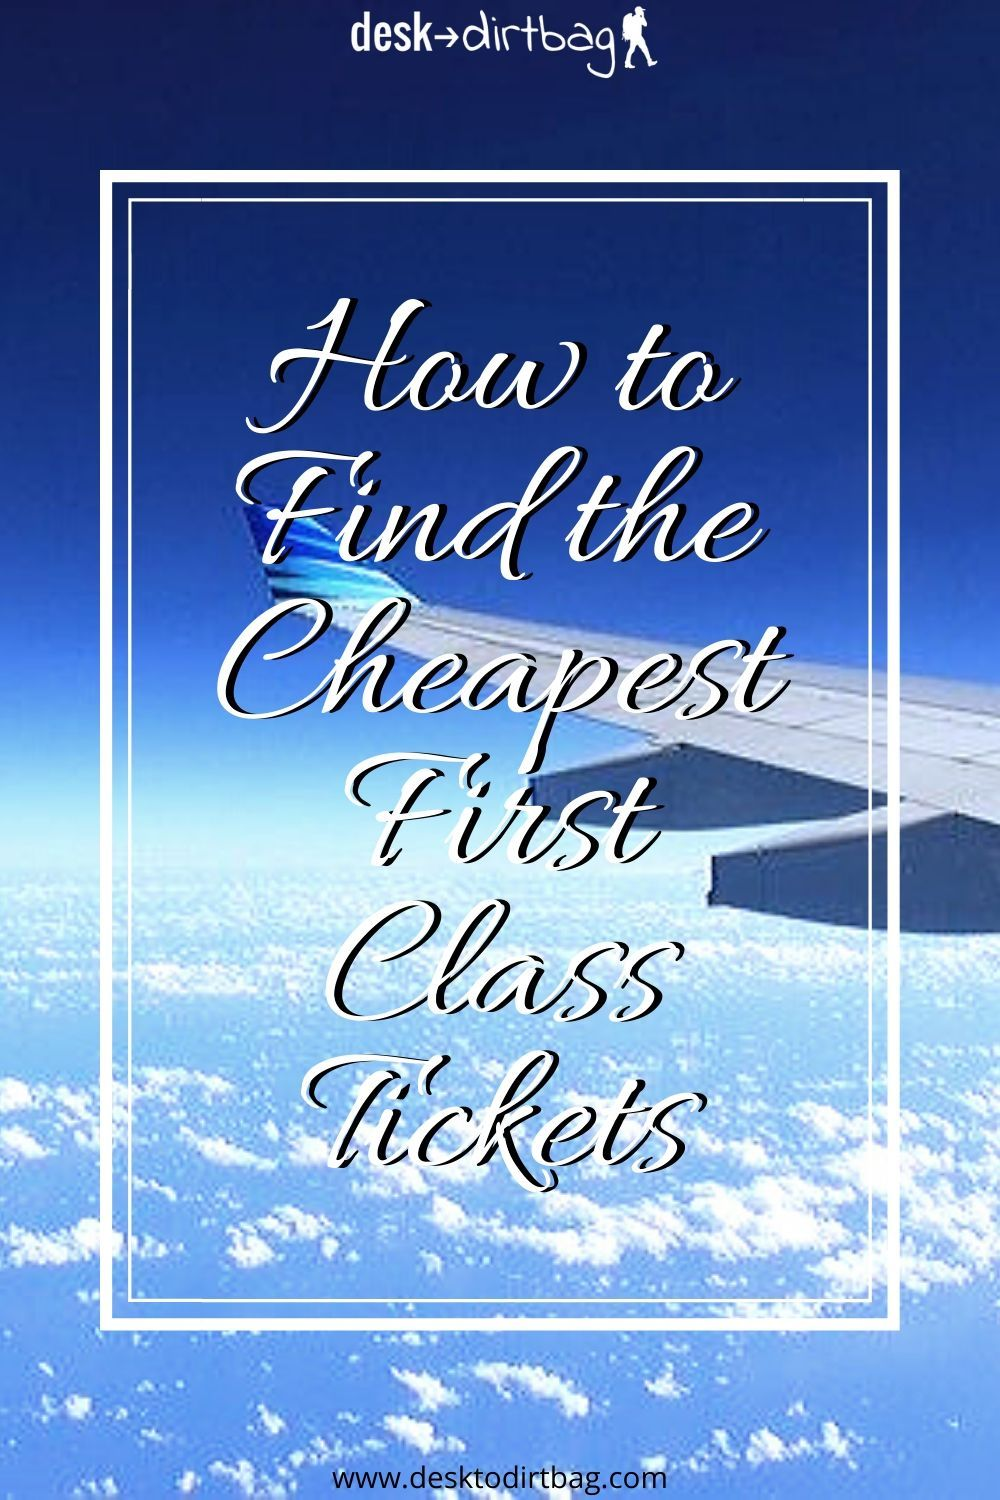 Does travel have to be expensive? What if you could fly anywhere for pennies on the dollar? Here's how to get cheap first class tickets for almost free. #travel #budgettravel #travelhacking #firstclass #luxury